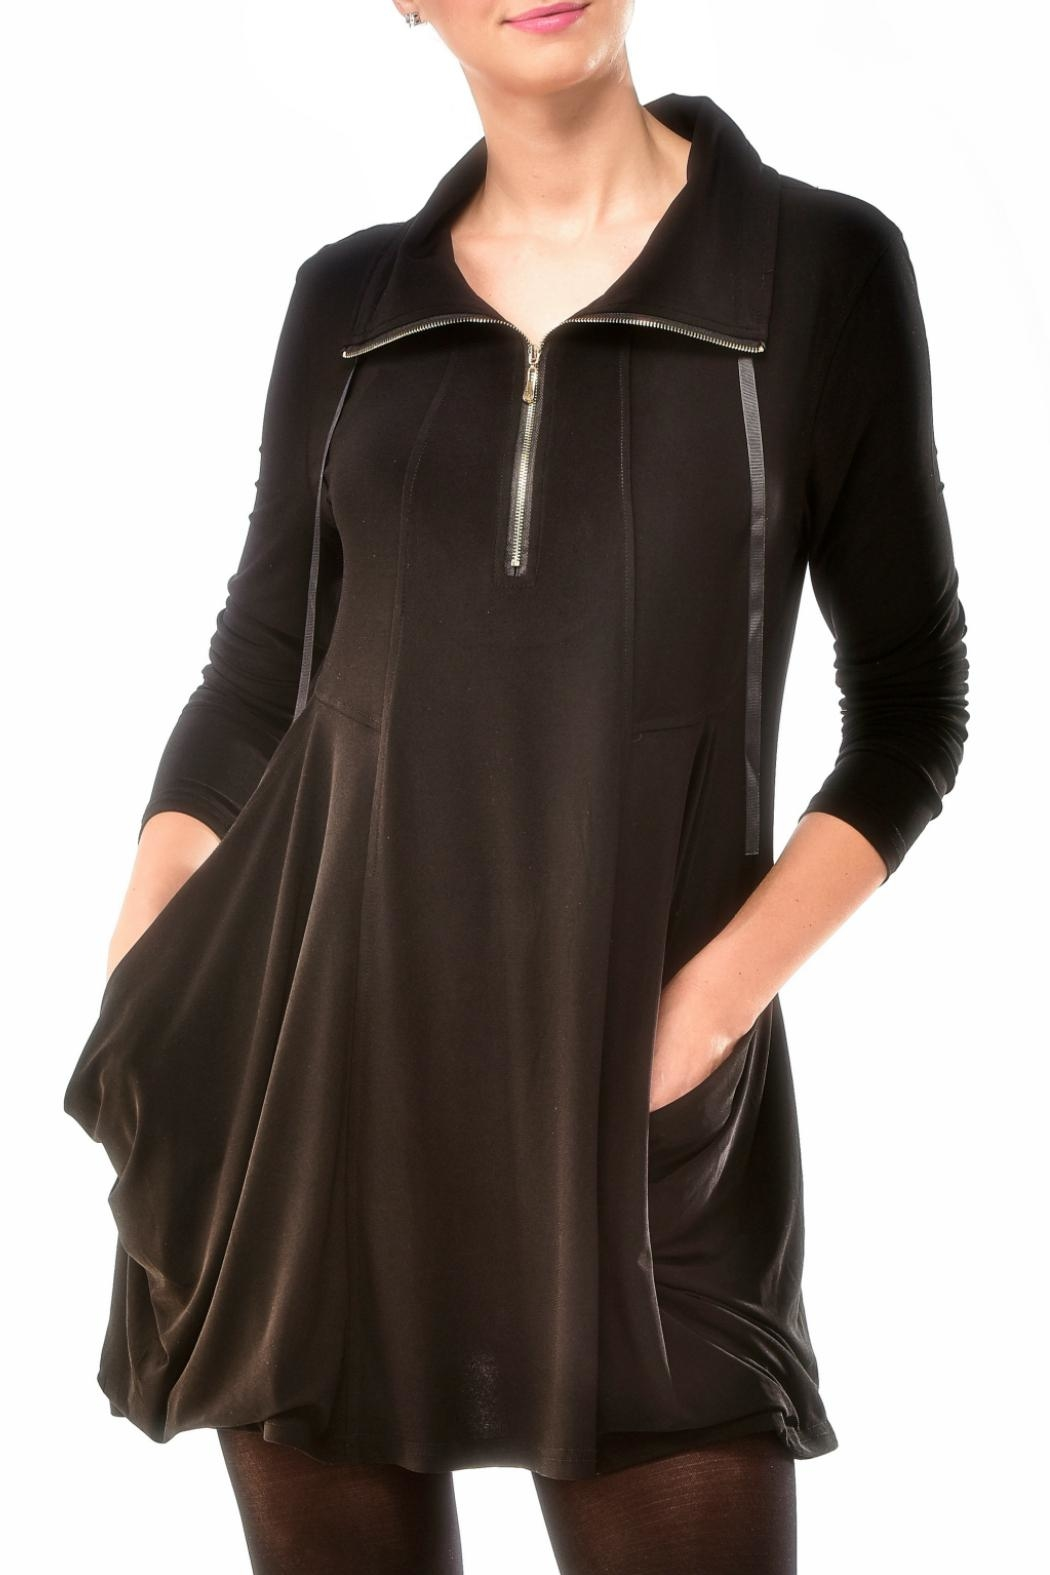 Charlie Paige Zippered Knit Tunic Top - Front Cropped Image